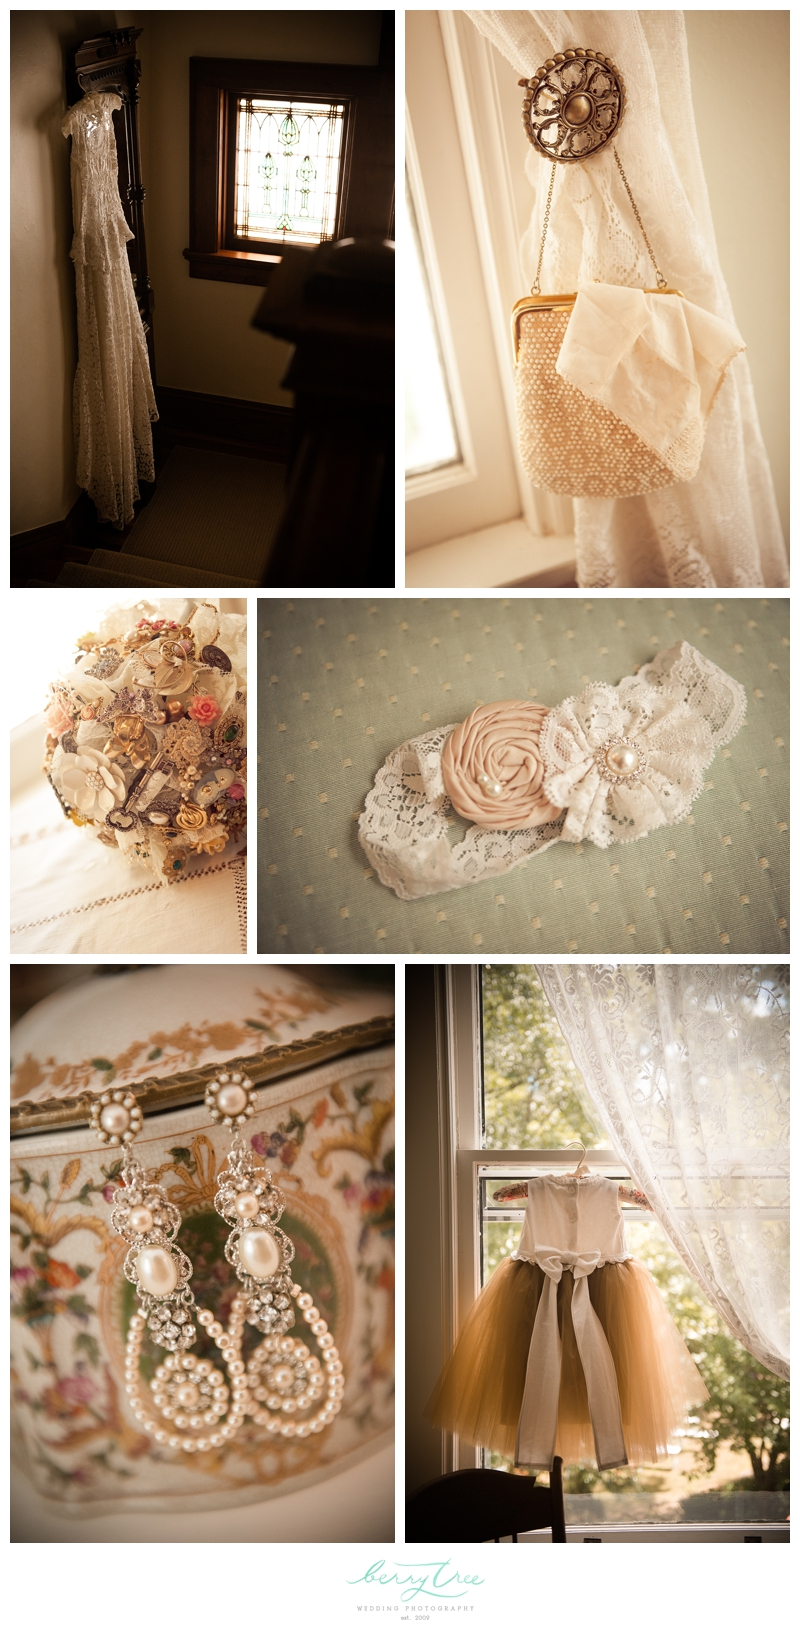 2013 01 04 00381 Kyle & Erin | Madison Oaks Inn & Gardens | Madison, GA | BerryTree Wedding Photography